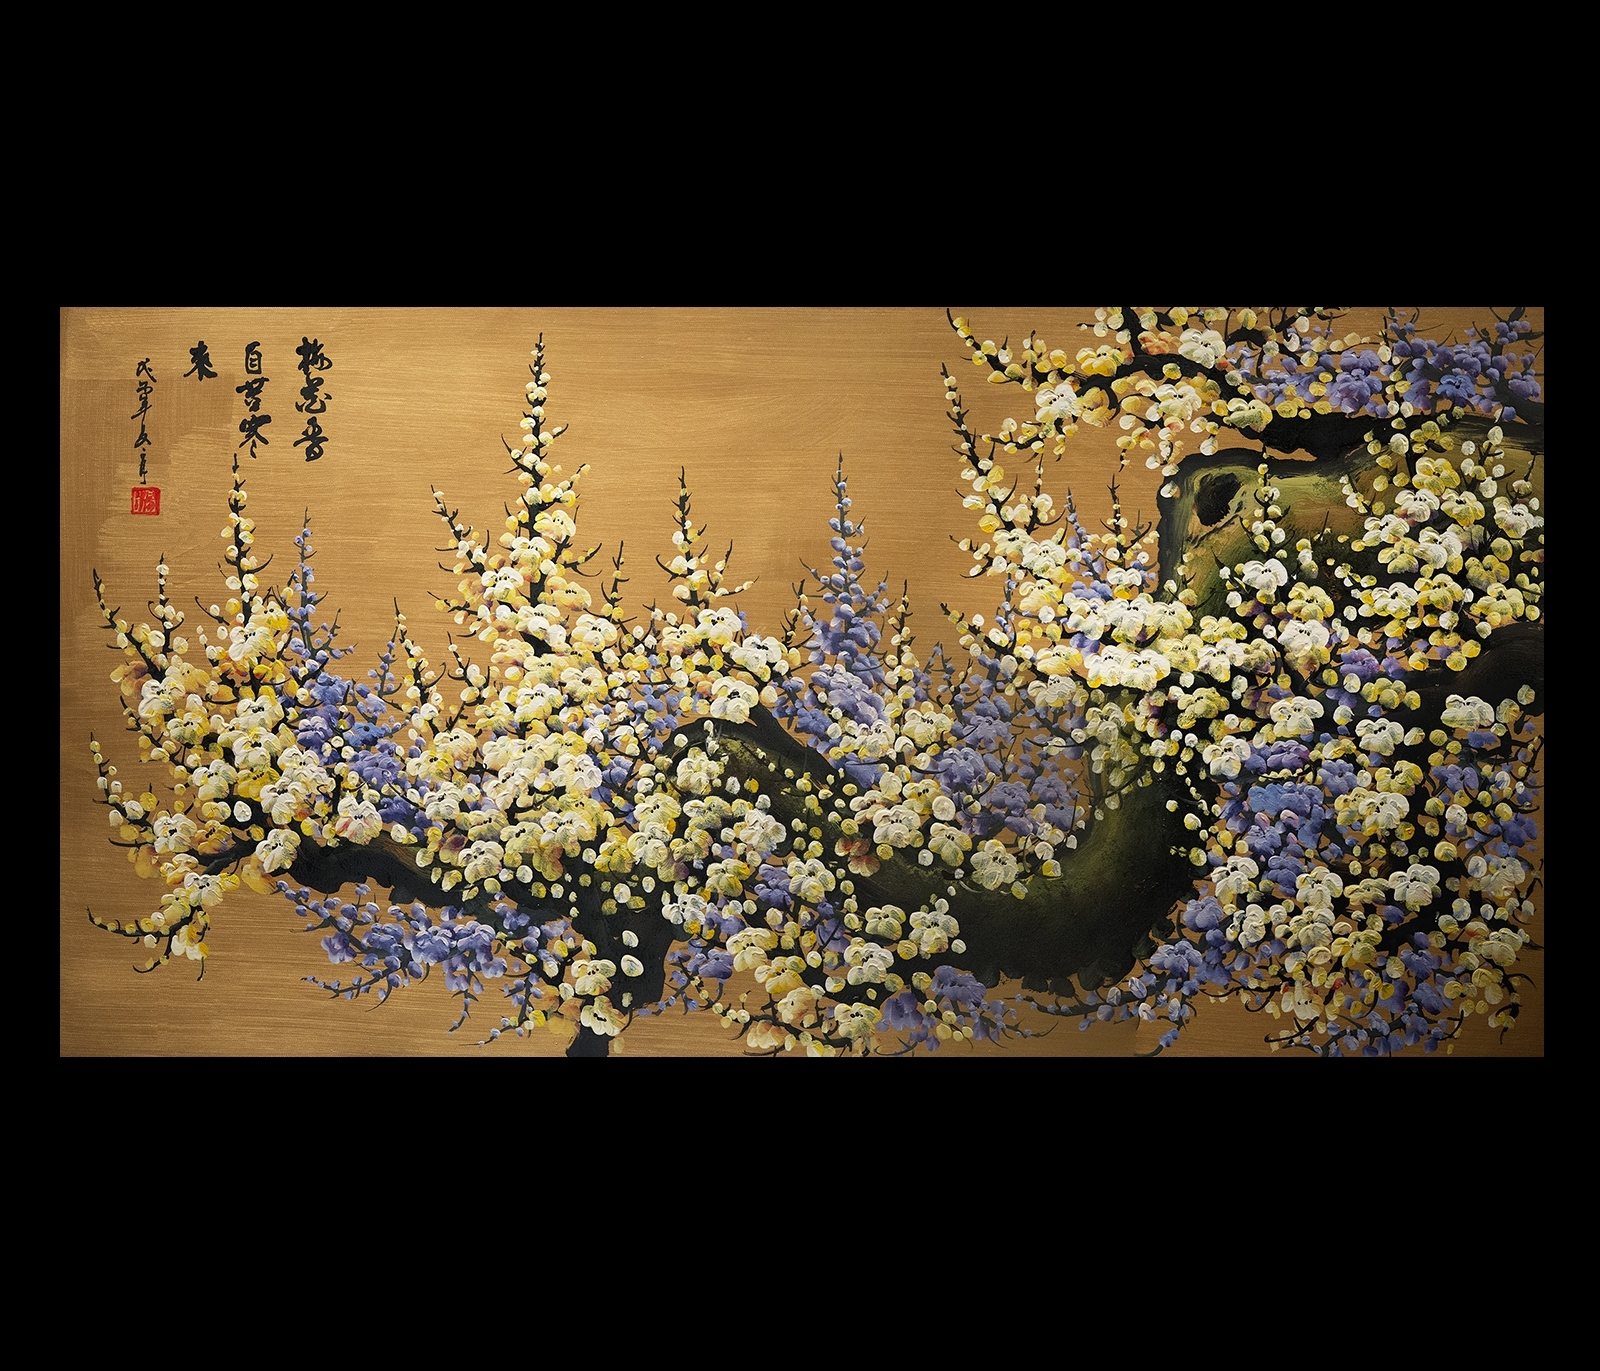 Canvas Wall Art Japanese Cherry Blossom Painting Feng Shui Intended For Most Recently Released Abstract Cherry Blossom Wall Art (View 12 of 20)